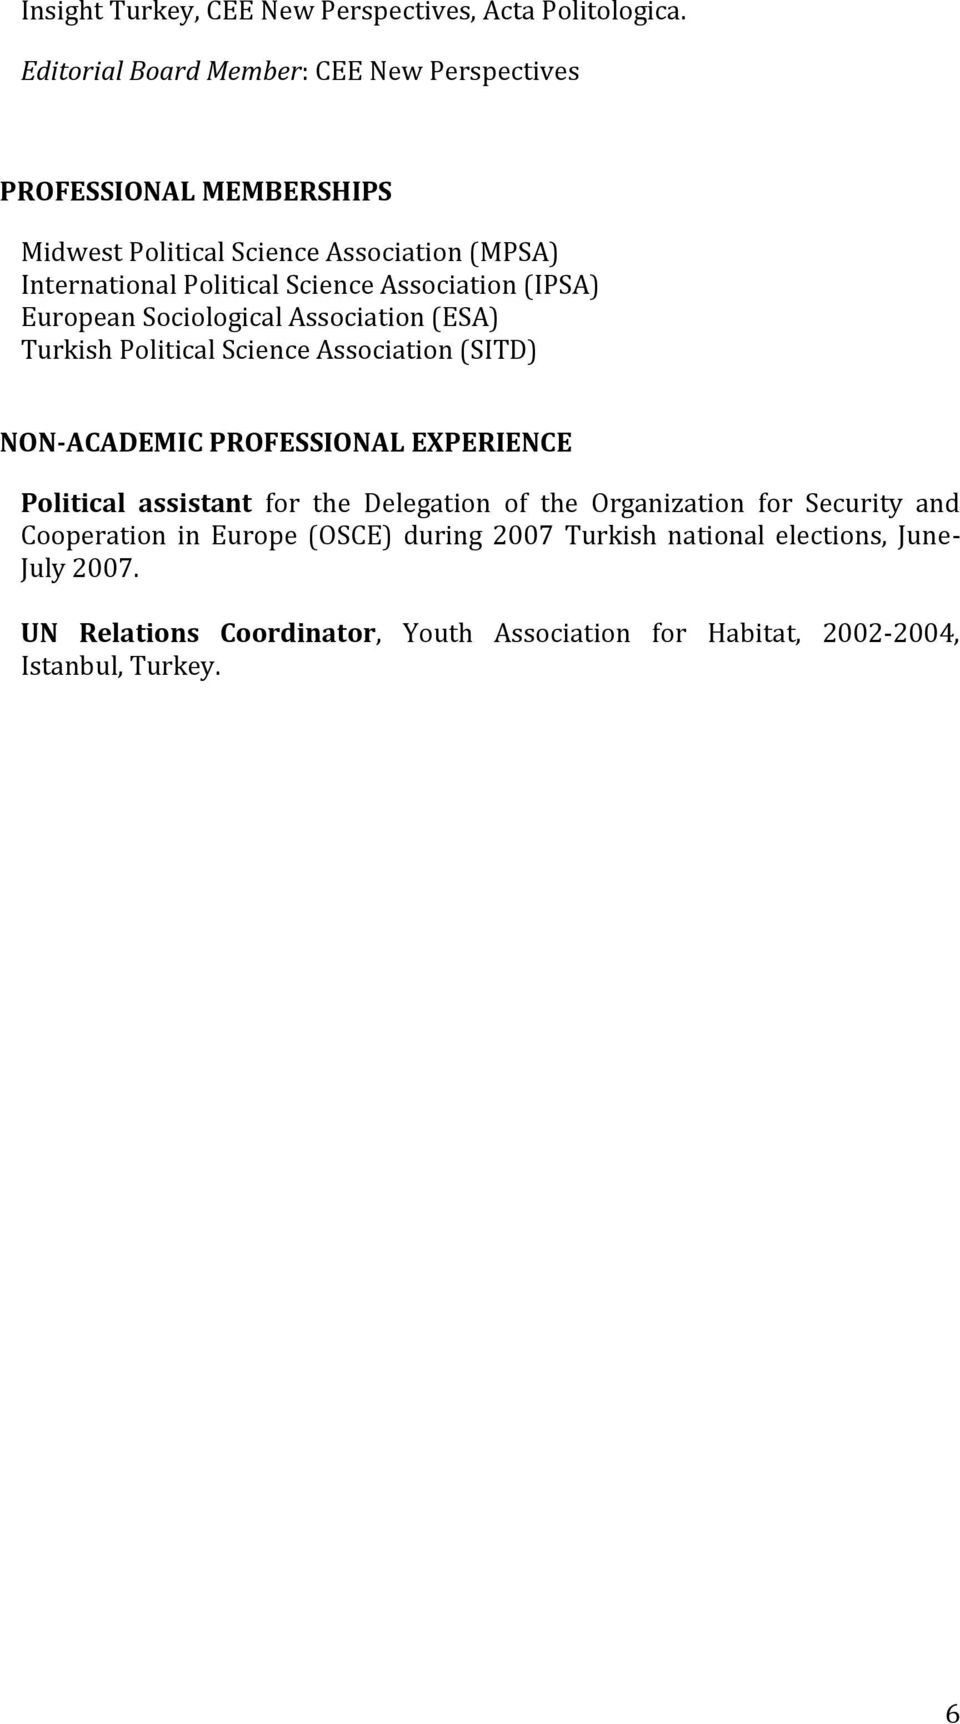 Association (IPSA) European Sociological Association (ESA) Turkish Political Science Association (SITD) NON-ACADEMIC PROFESSIONAL EXPERIENCE